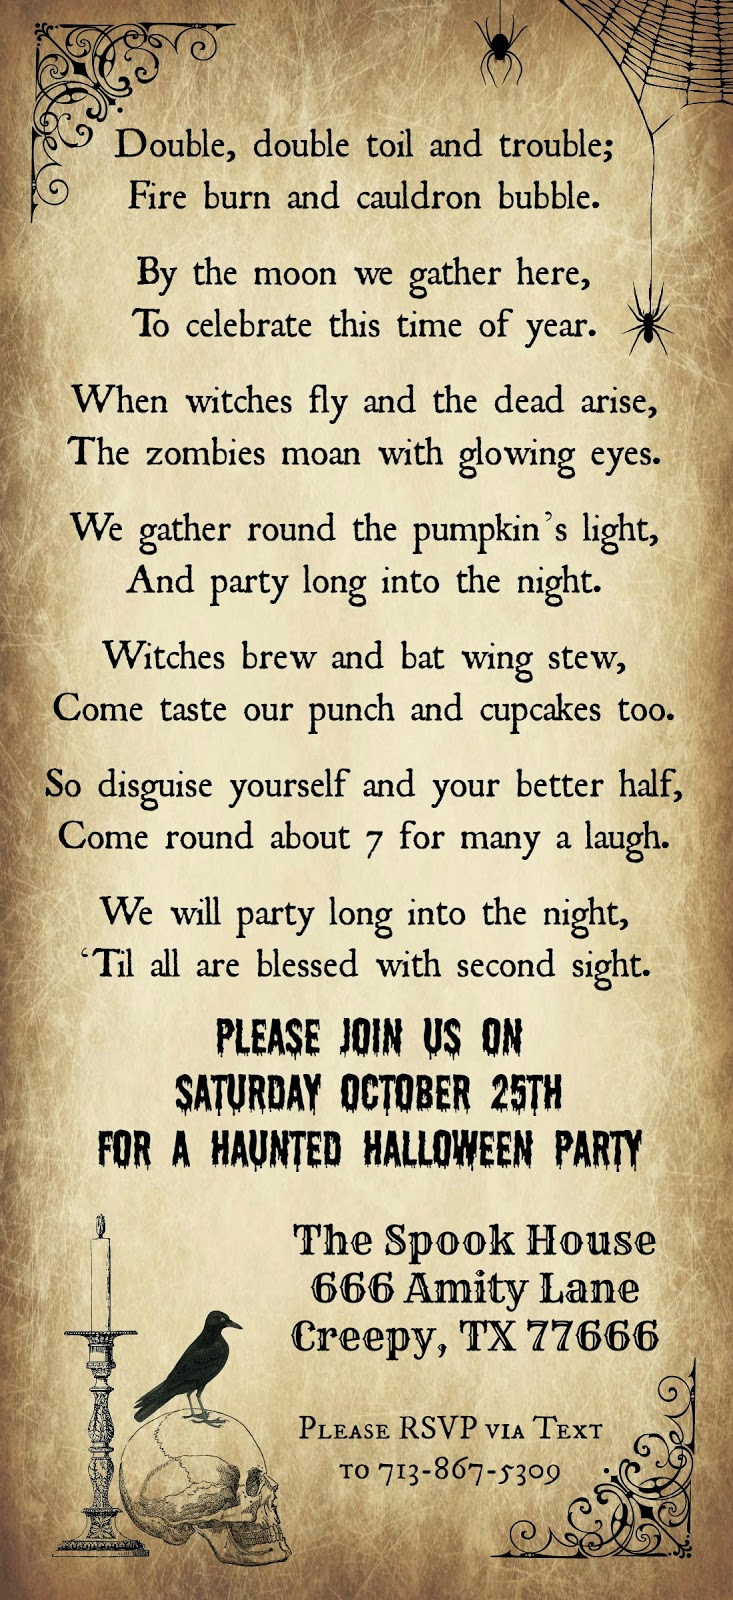 Crafty in Crosby: Halloween Party Invitation 2014